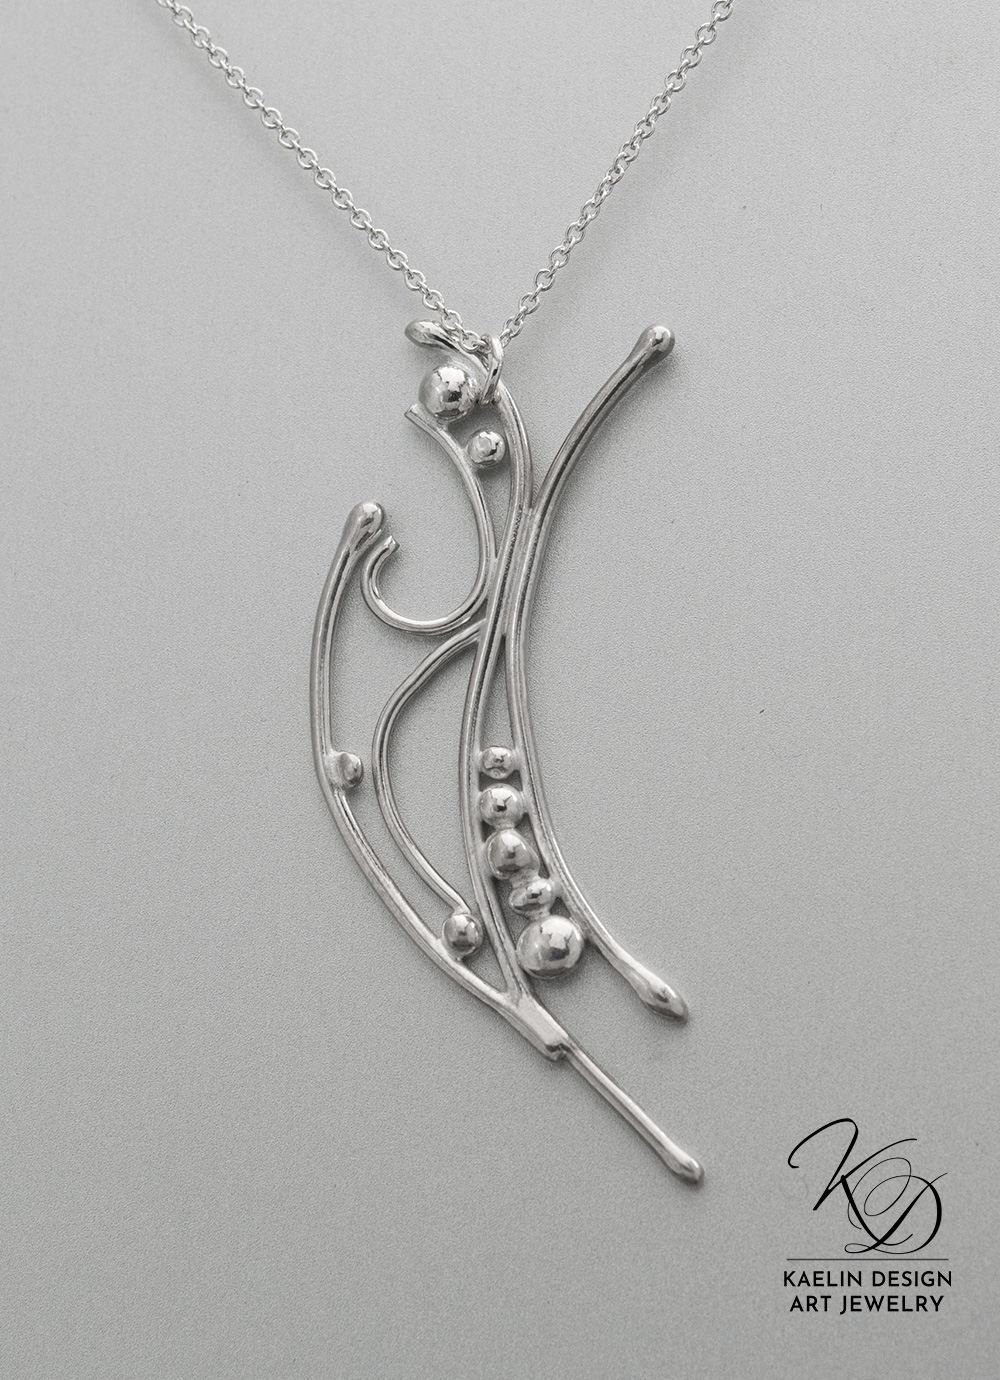 Ocean Froth Hand Forged Silver Art Jewelry Pendant by Kaelin Design